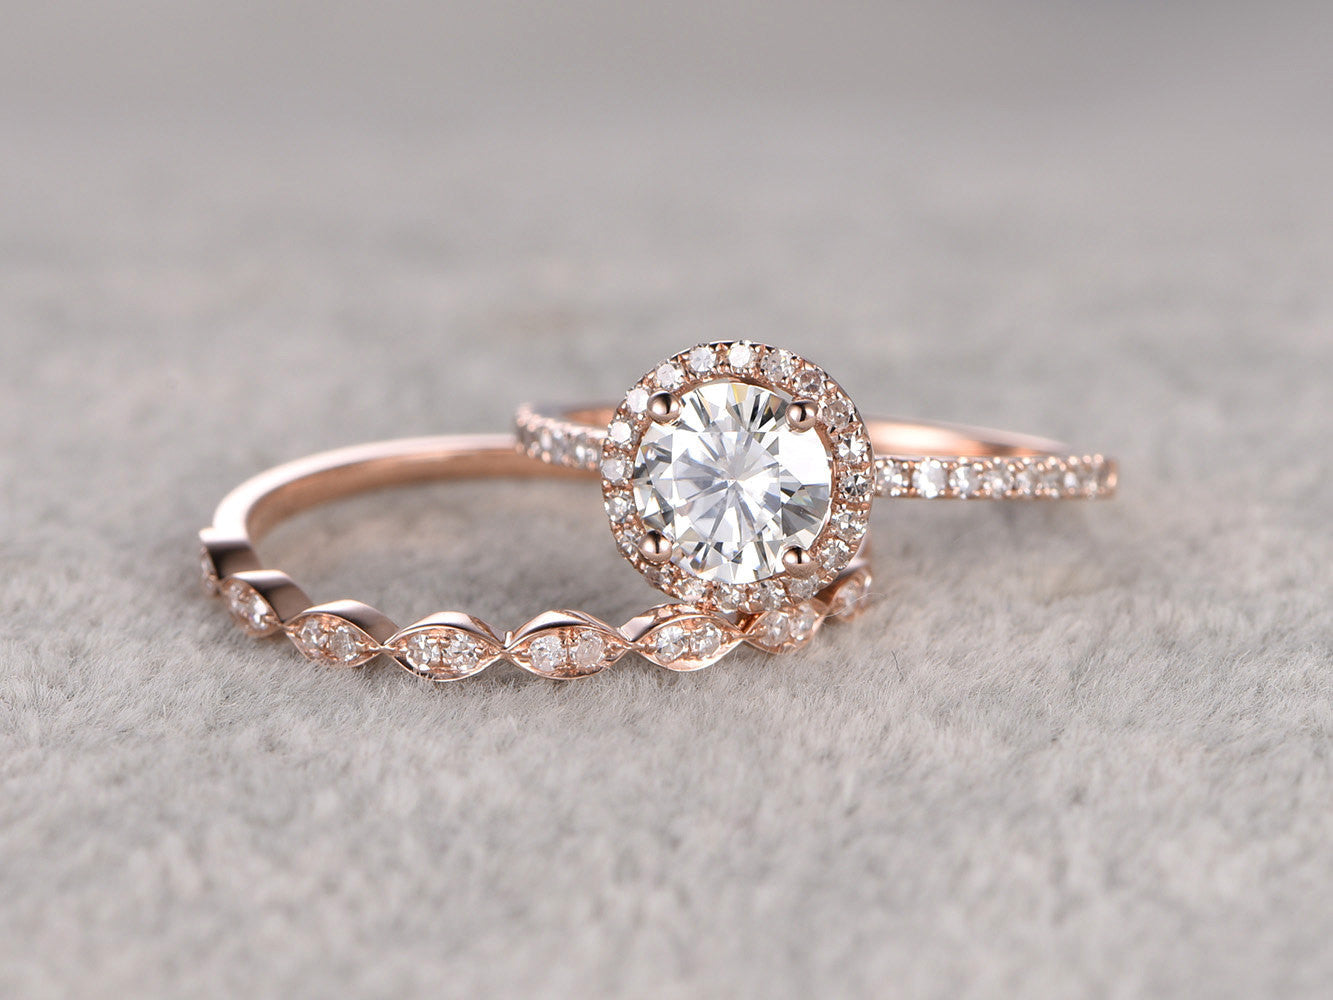 2pc Moissanite Bridal Set,Engagement ring Rose gold,Diamond Marquise wedding band,6.5mm Round Cut,Gemstone Promise Ring,Art Deco eternity